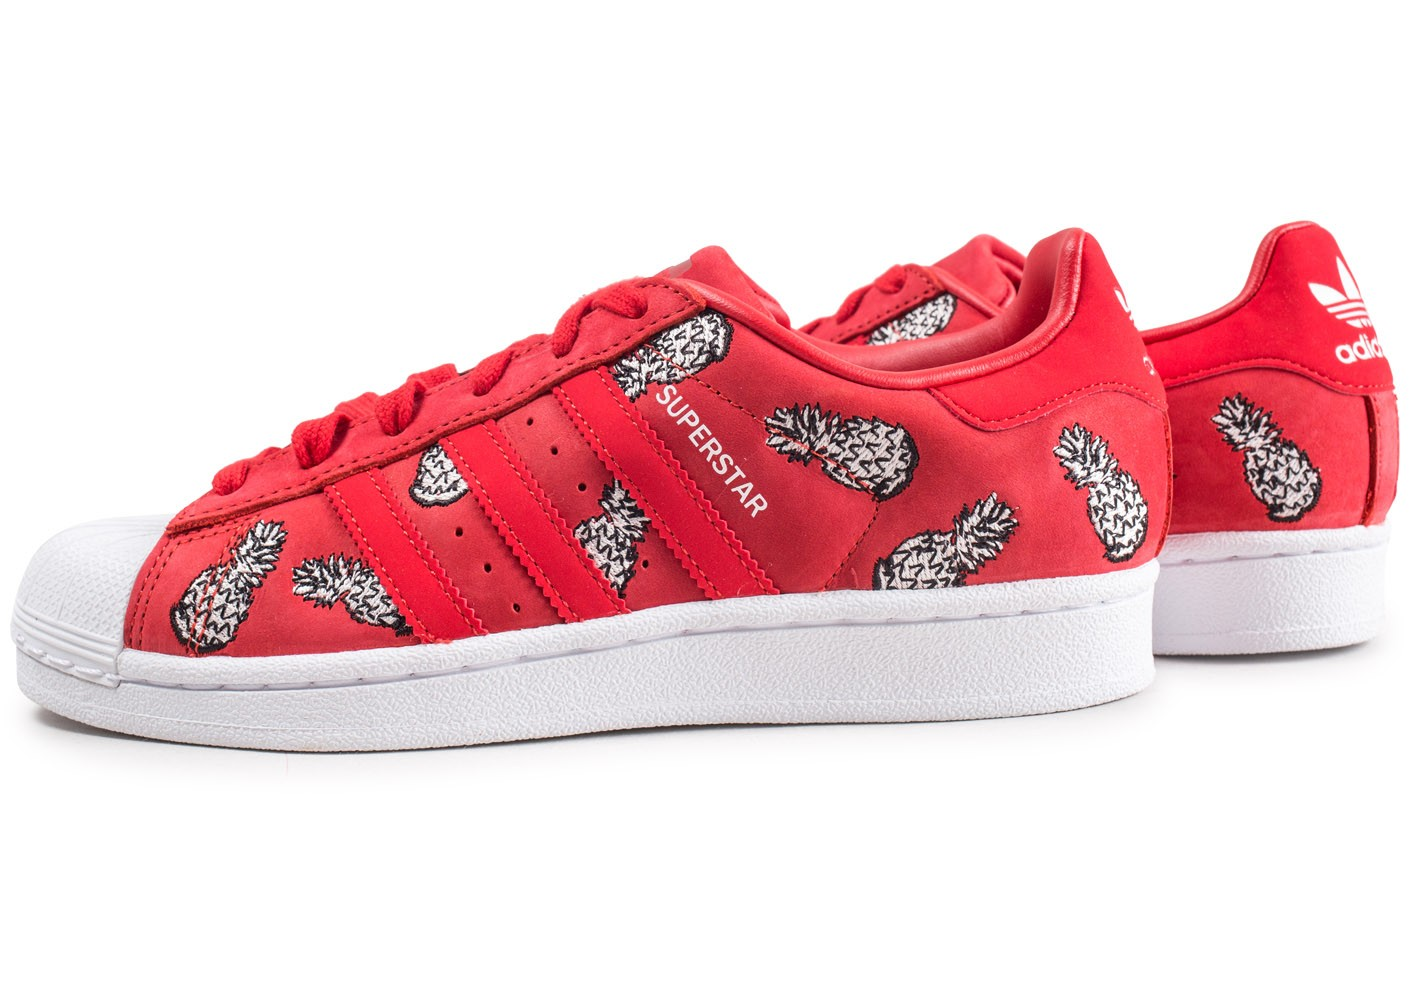 adidas Superstar The Farm Company rouge femme - Chaussures ...